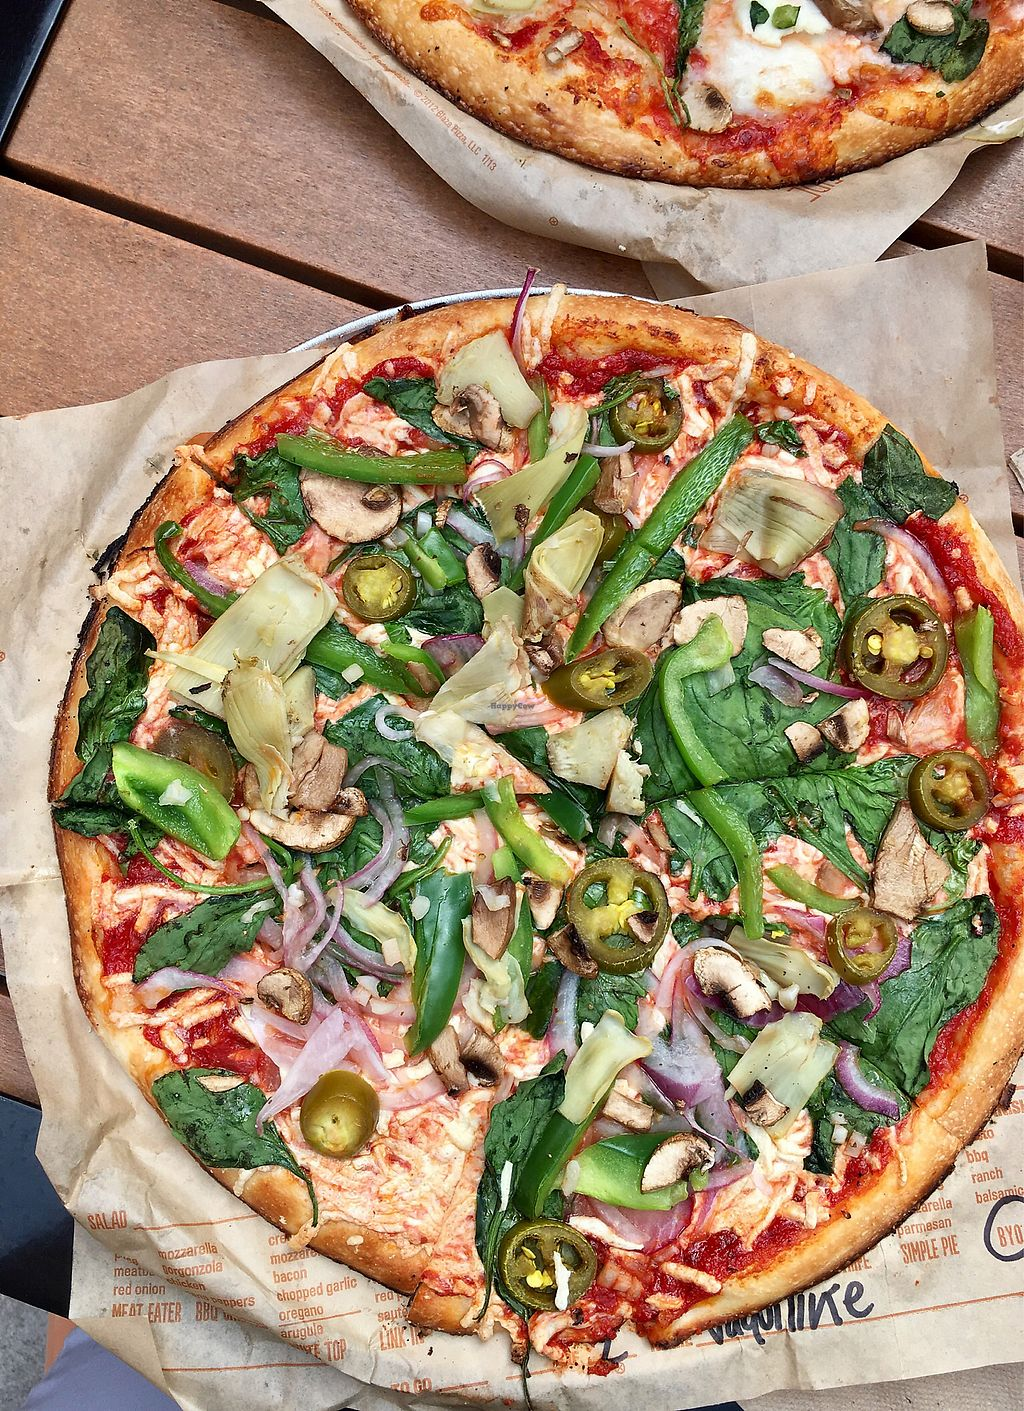 """Photo of Blaze Pizza  by <a href=""""/members/profile/Jaclynch_eats"""">Jaclynch_eats</a> <br/>Build your own with lots of veggies and vegan cheese  <br/> March 15, 2018  - <a href='/contact/abuse/image/88699/371049'>Report</a>"""